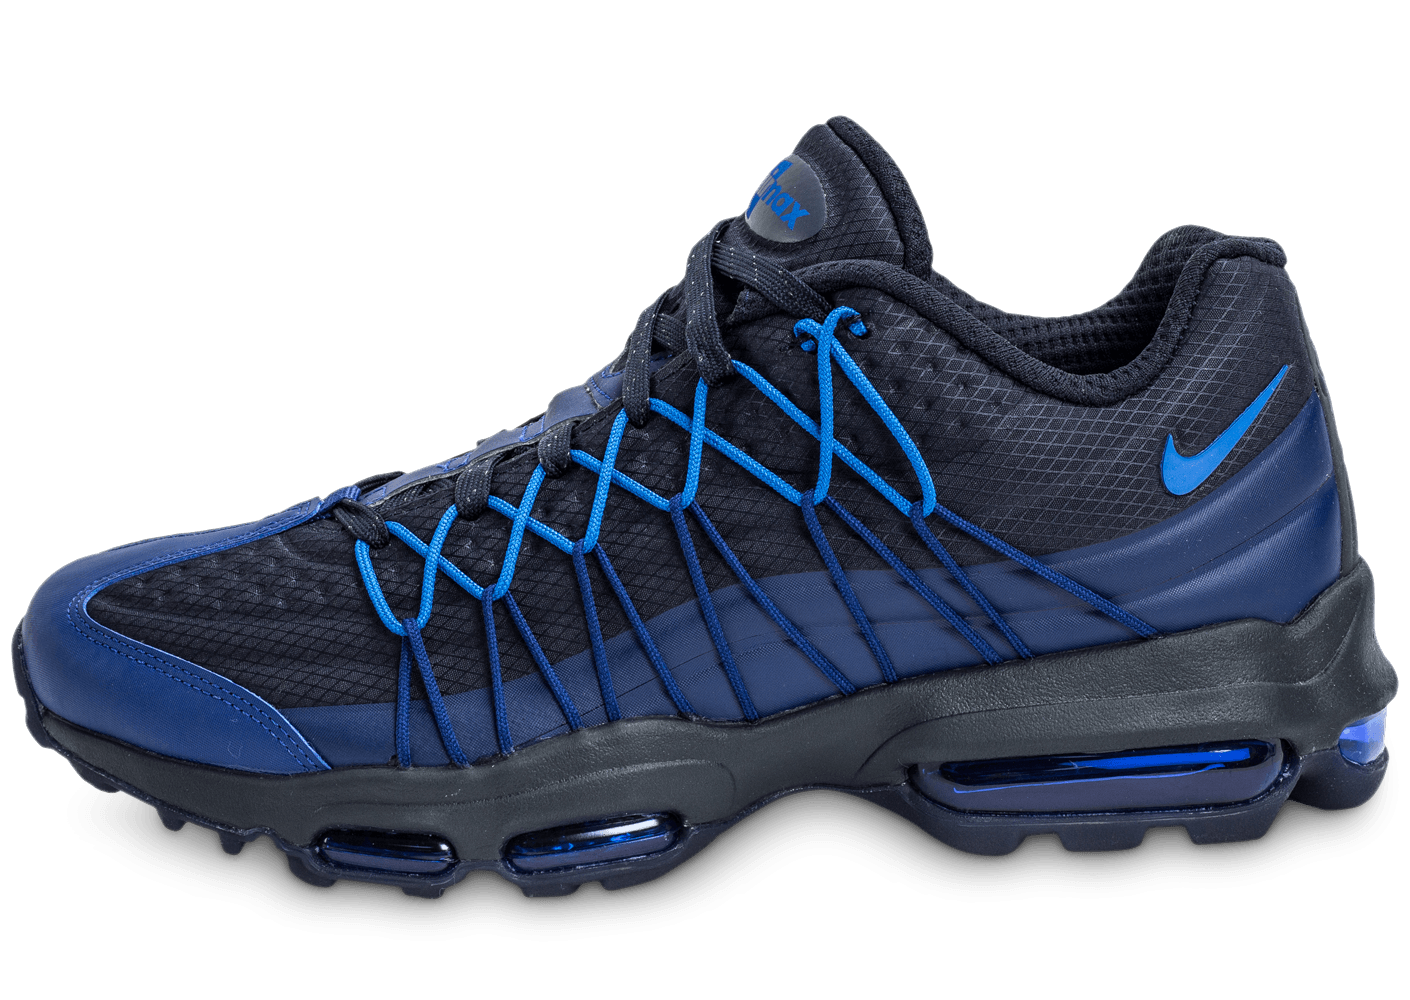 nike air max 95 ultra se bleu marine chaussures homme chausport. Black Bedroom Furniture Sets. Home Design Ideas